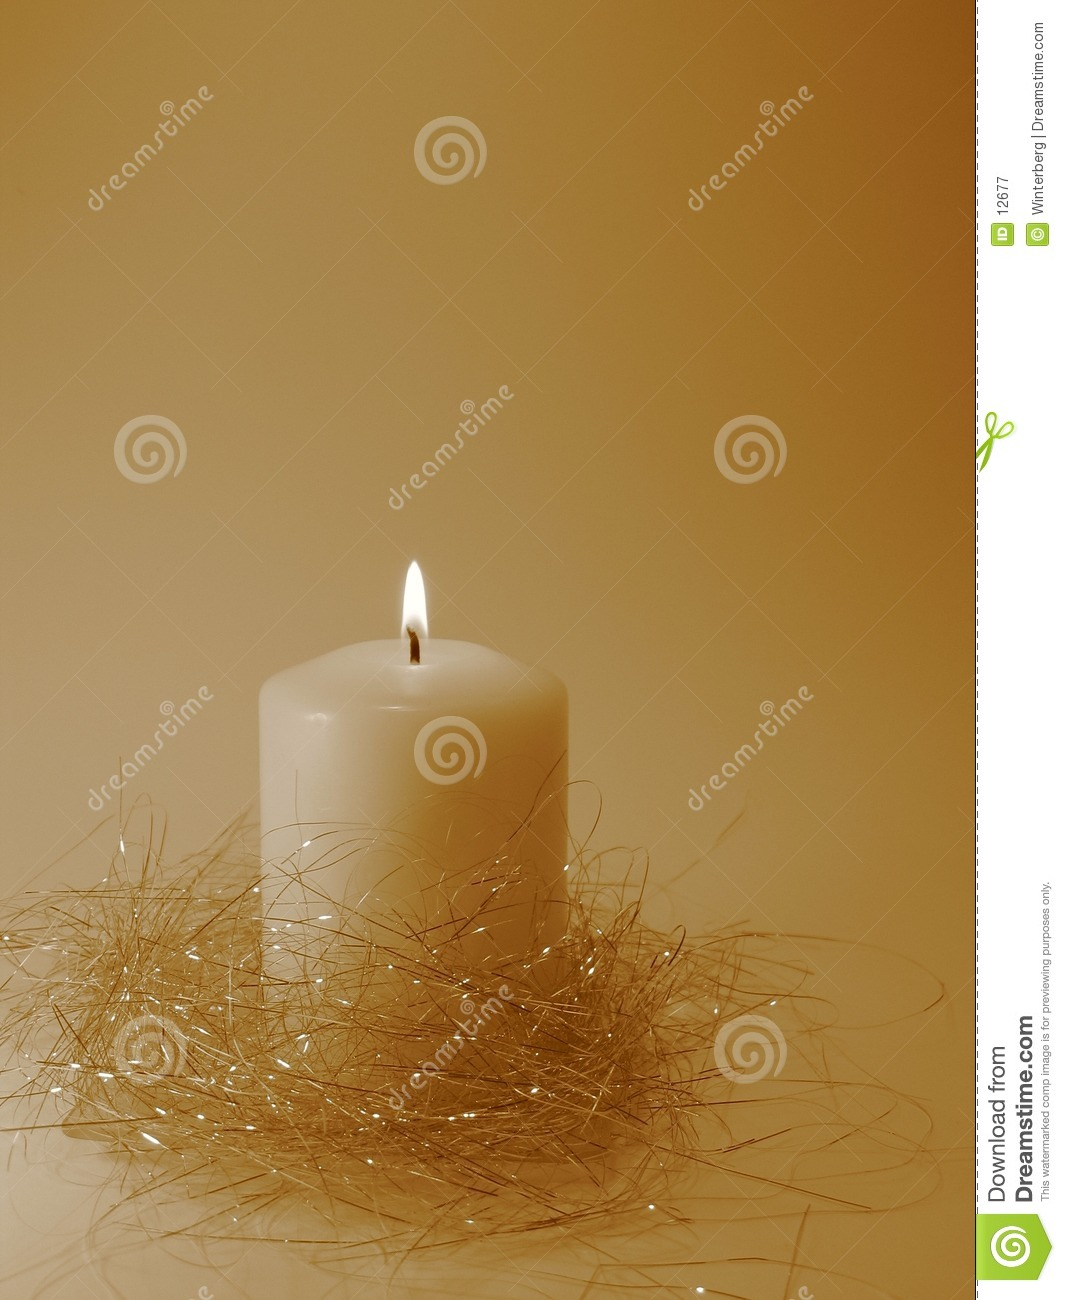 Burning White Candle